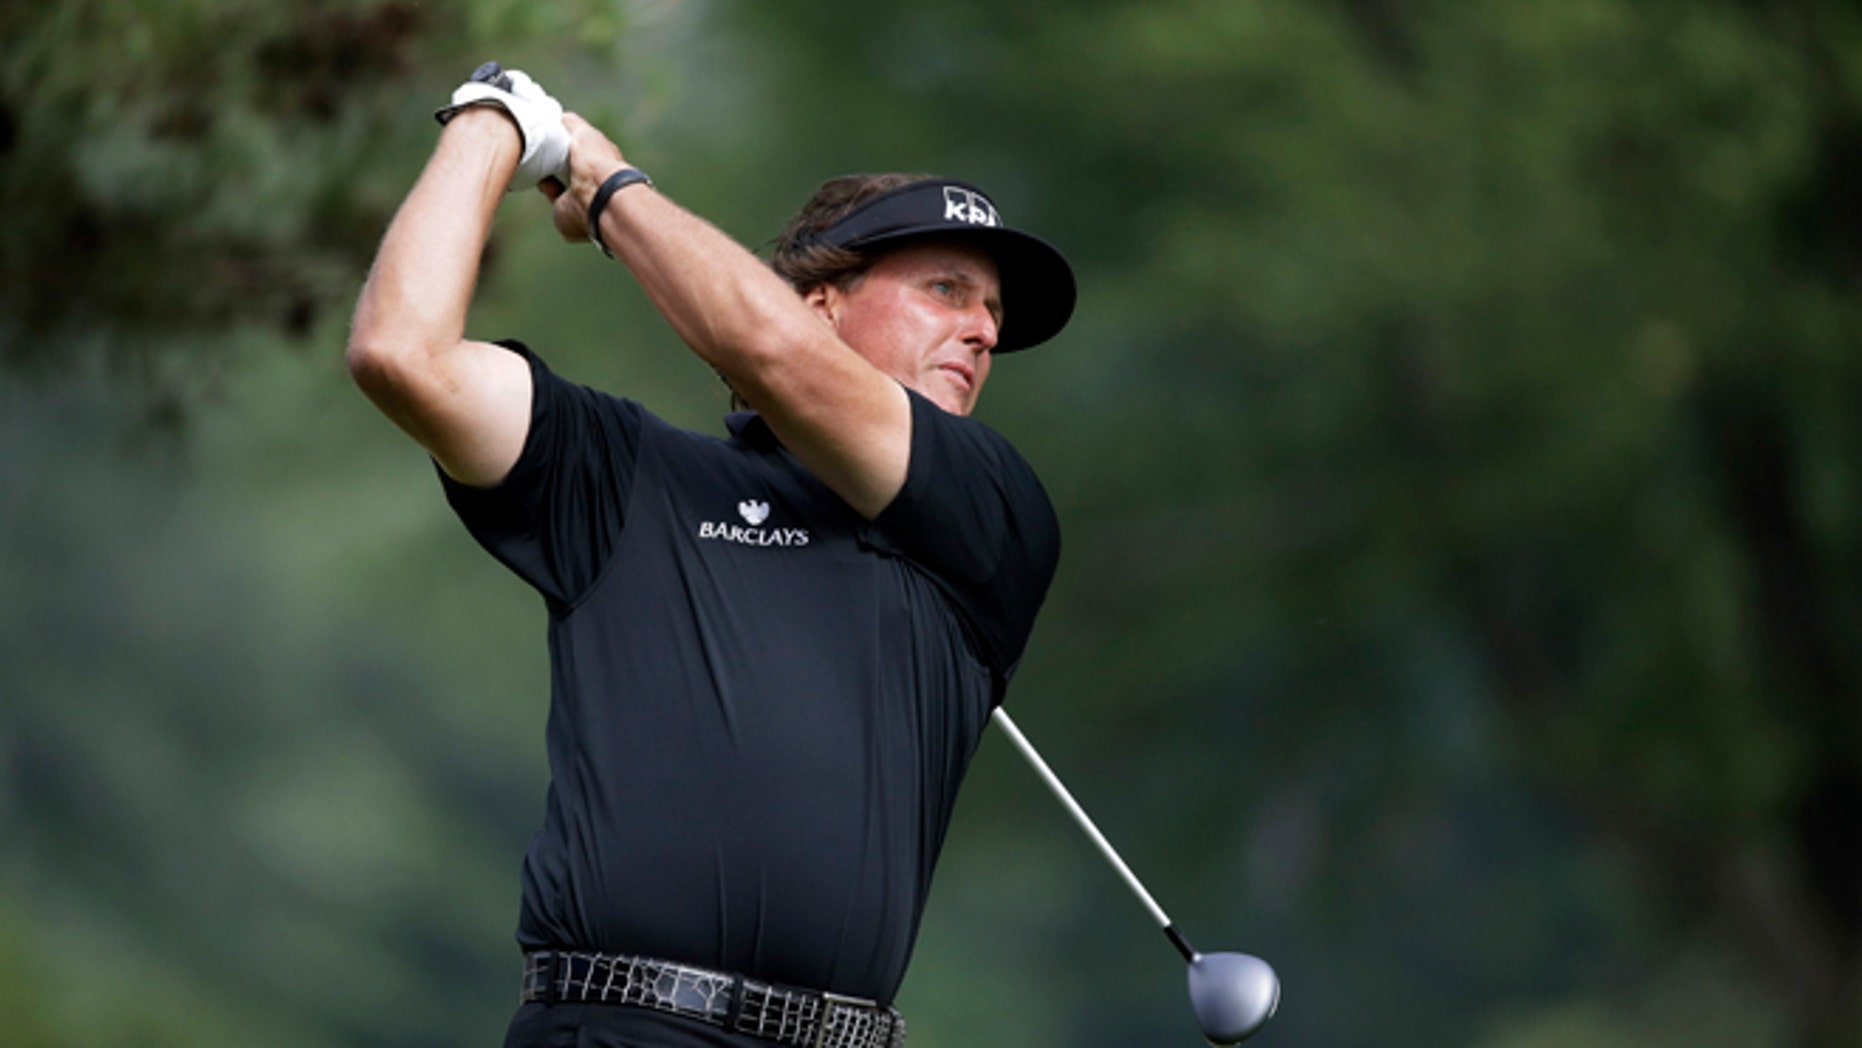 June 16, 2013: Phil Mickelson tees off on the second hole during the fourth round of the U.S. Open golf tournament at Merion Golf Club in Ardmore, Pa.